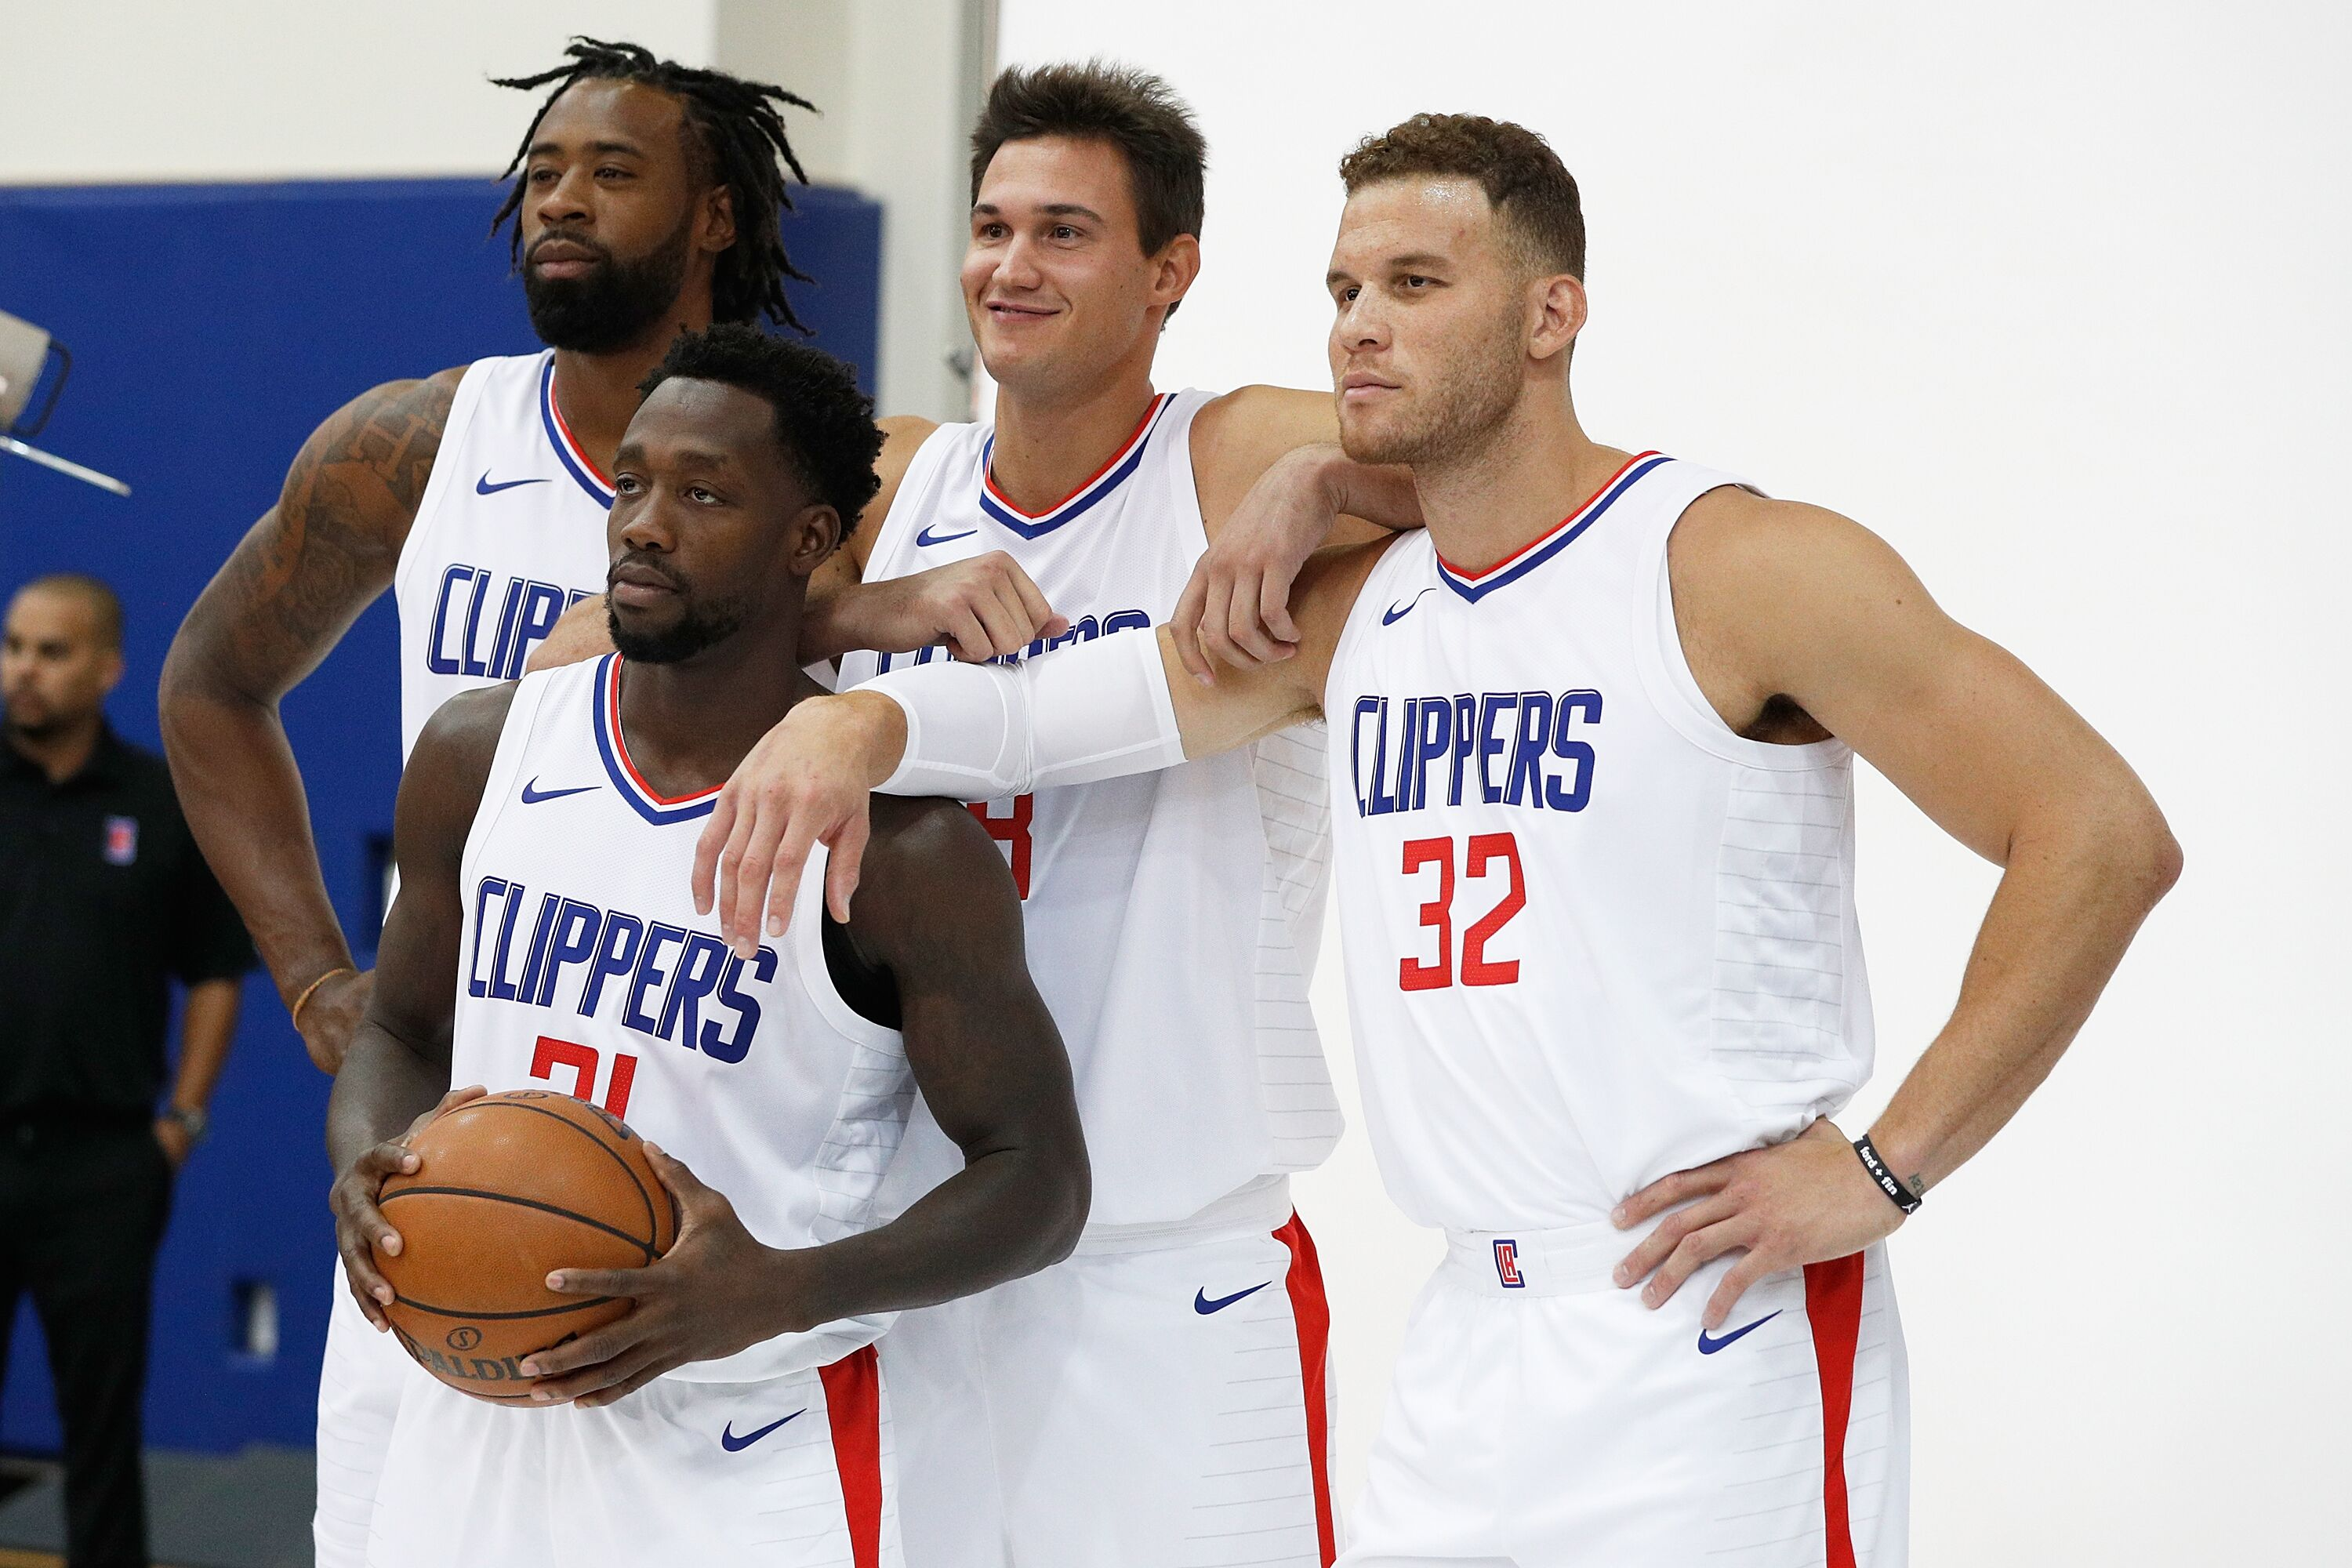 a49377a786f Los Angeles Clippers  5 takeaways from 2017-18 Media Day